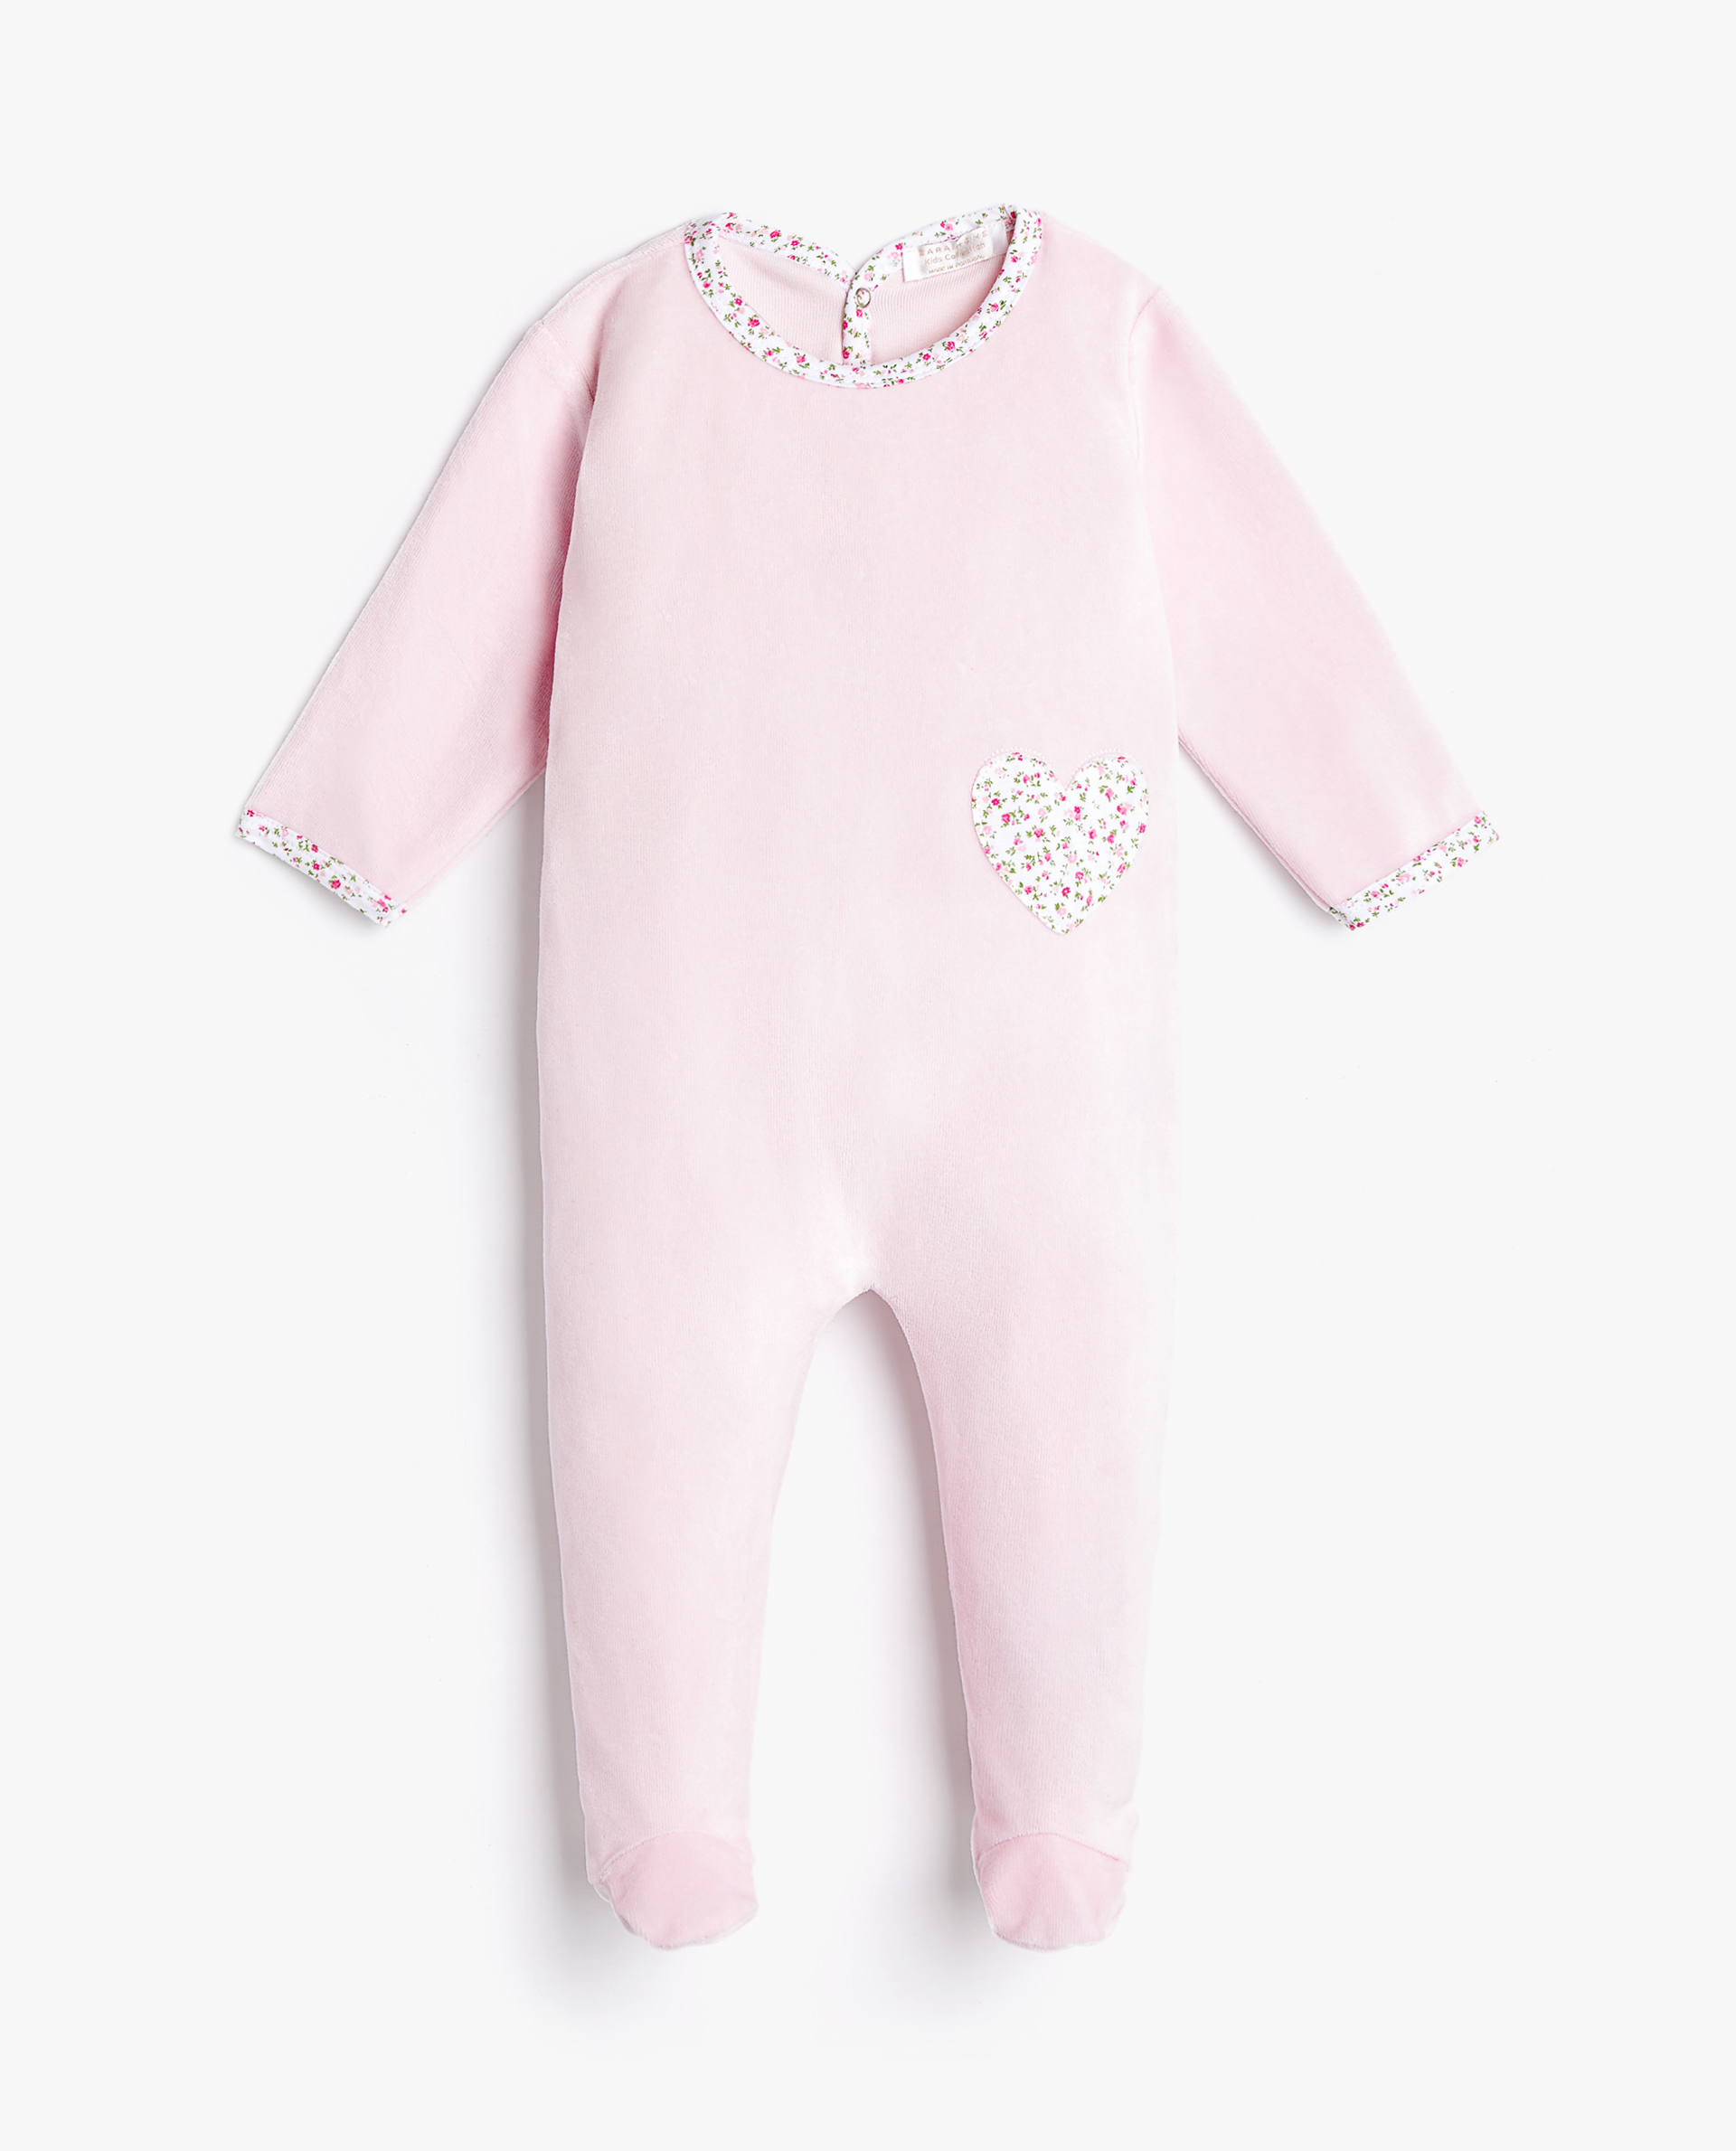 e0257b13 ROMPER SUIT WITH FLORAL-PRINTED HEART - BABY 3 MONTHS - 12 MONTHS ...